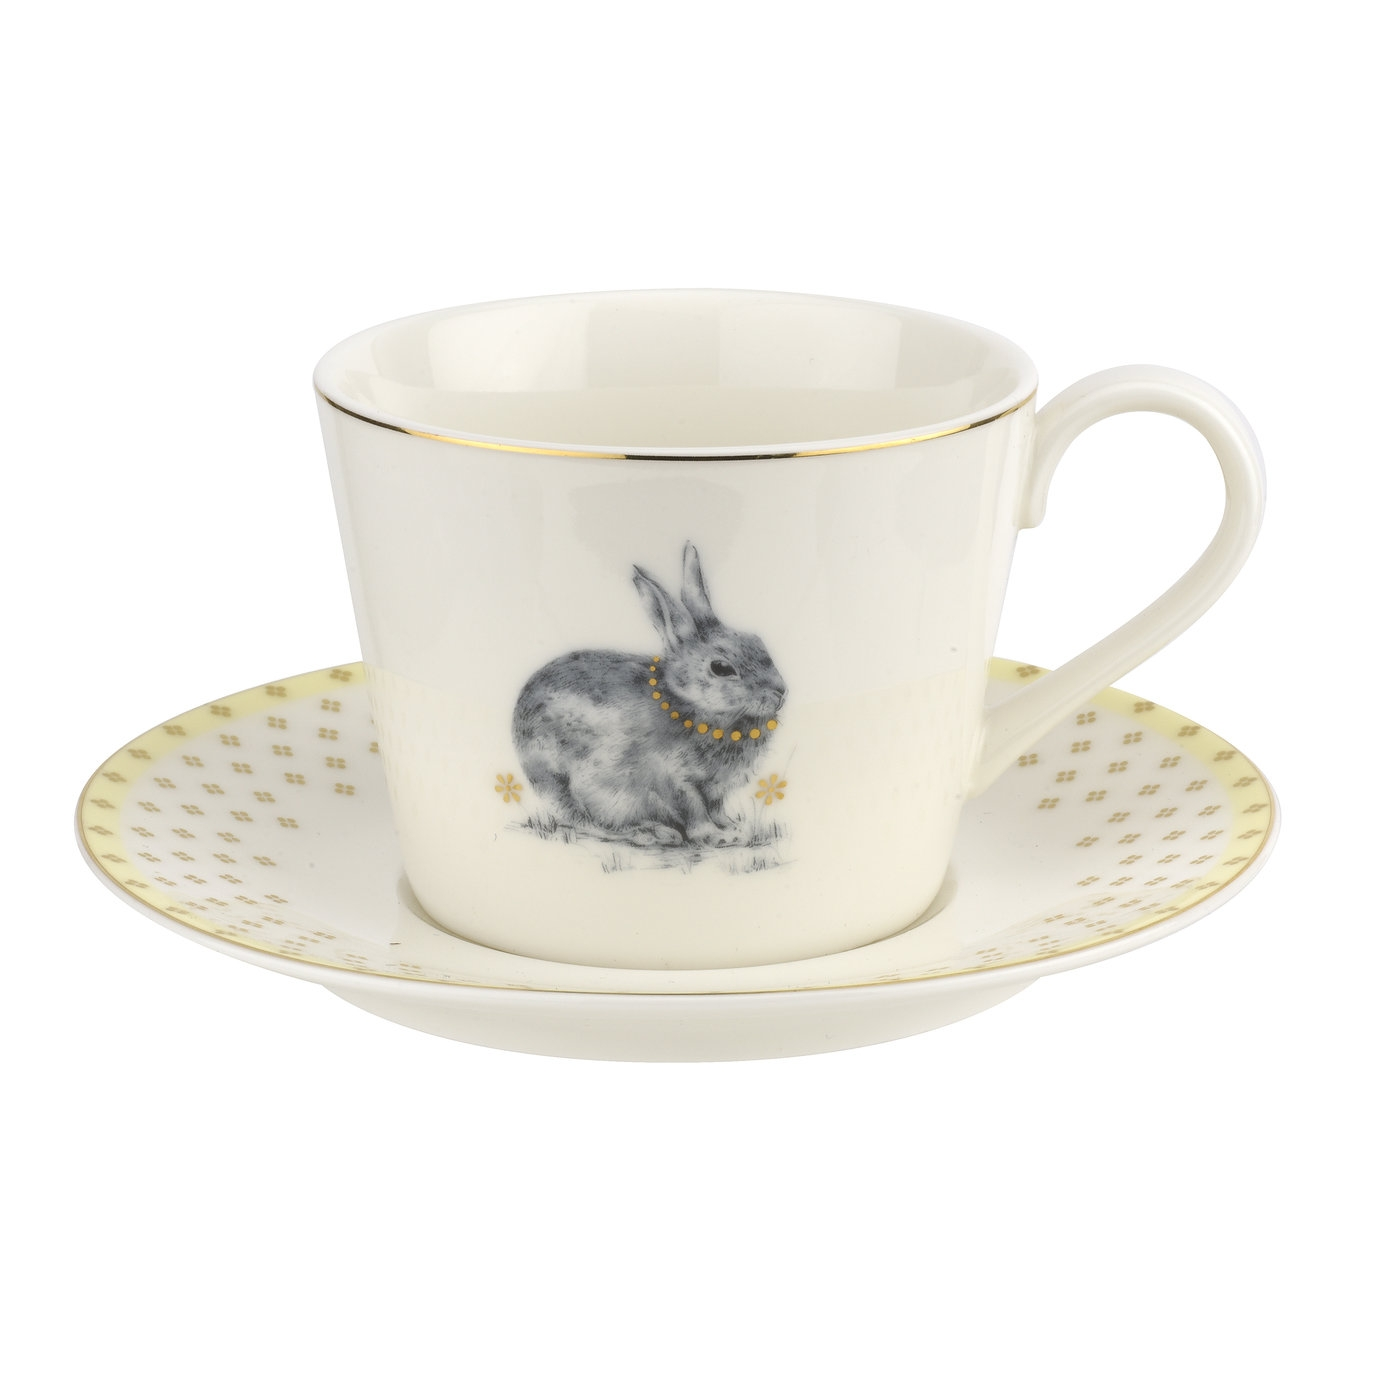 Spode Meadow Lane 8 oz Teacup  image number 0